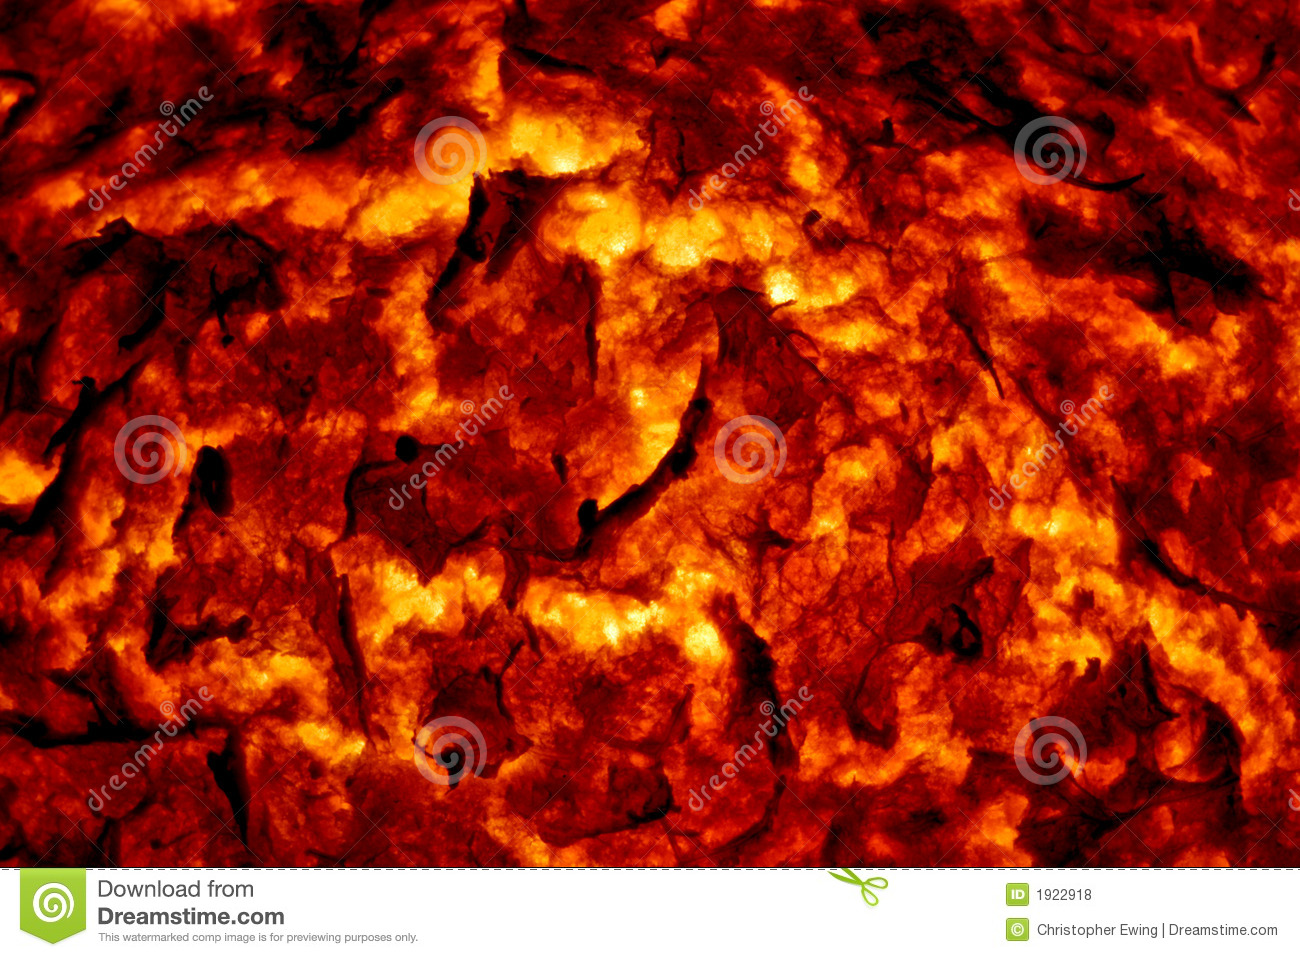 hot molten lava 3 stock photo image of molten fissure 1922918. Black Bedroom Furniture Sets. Home Design Ideas